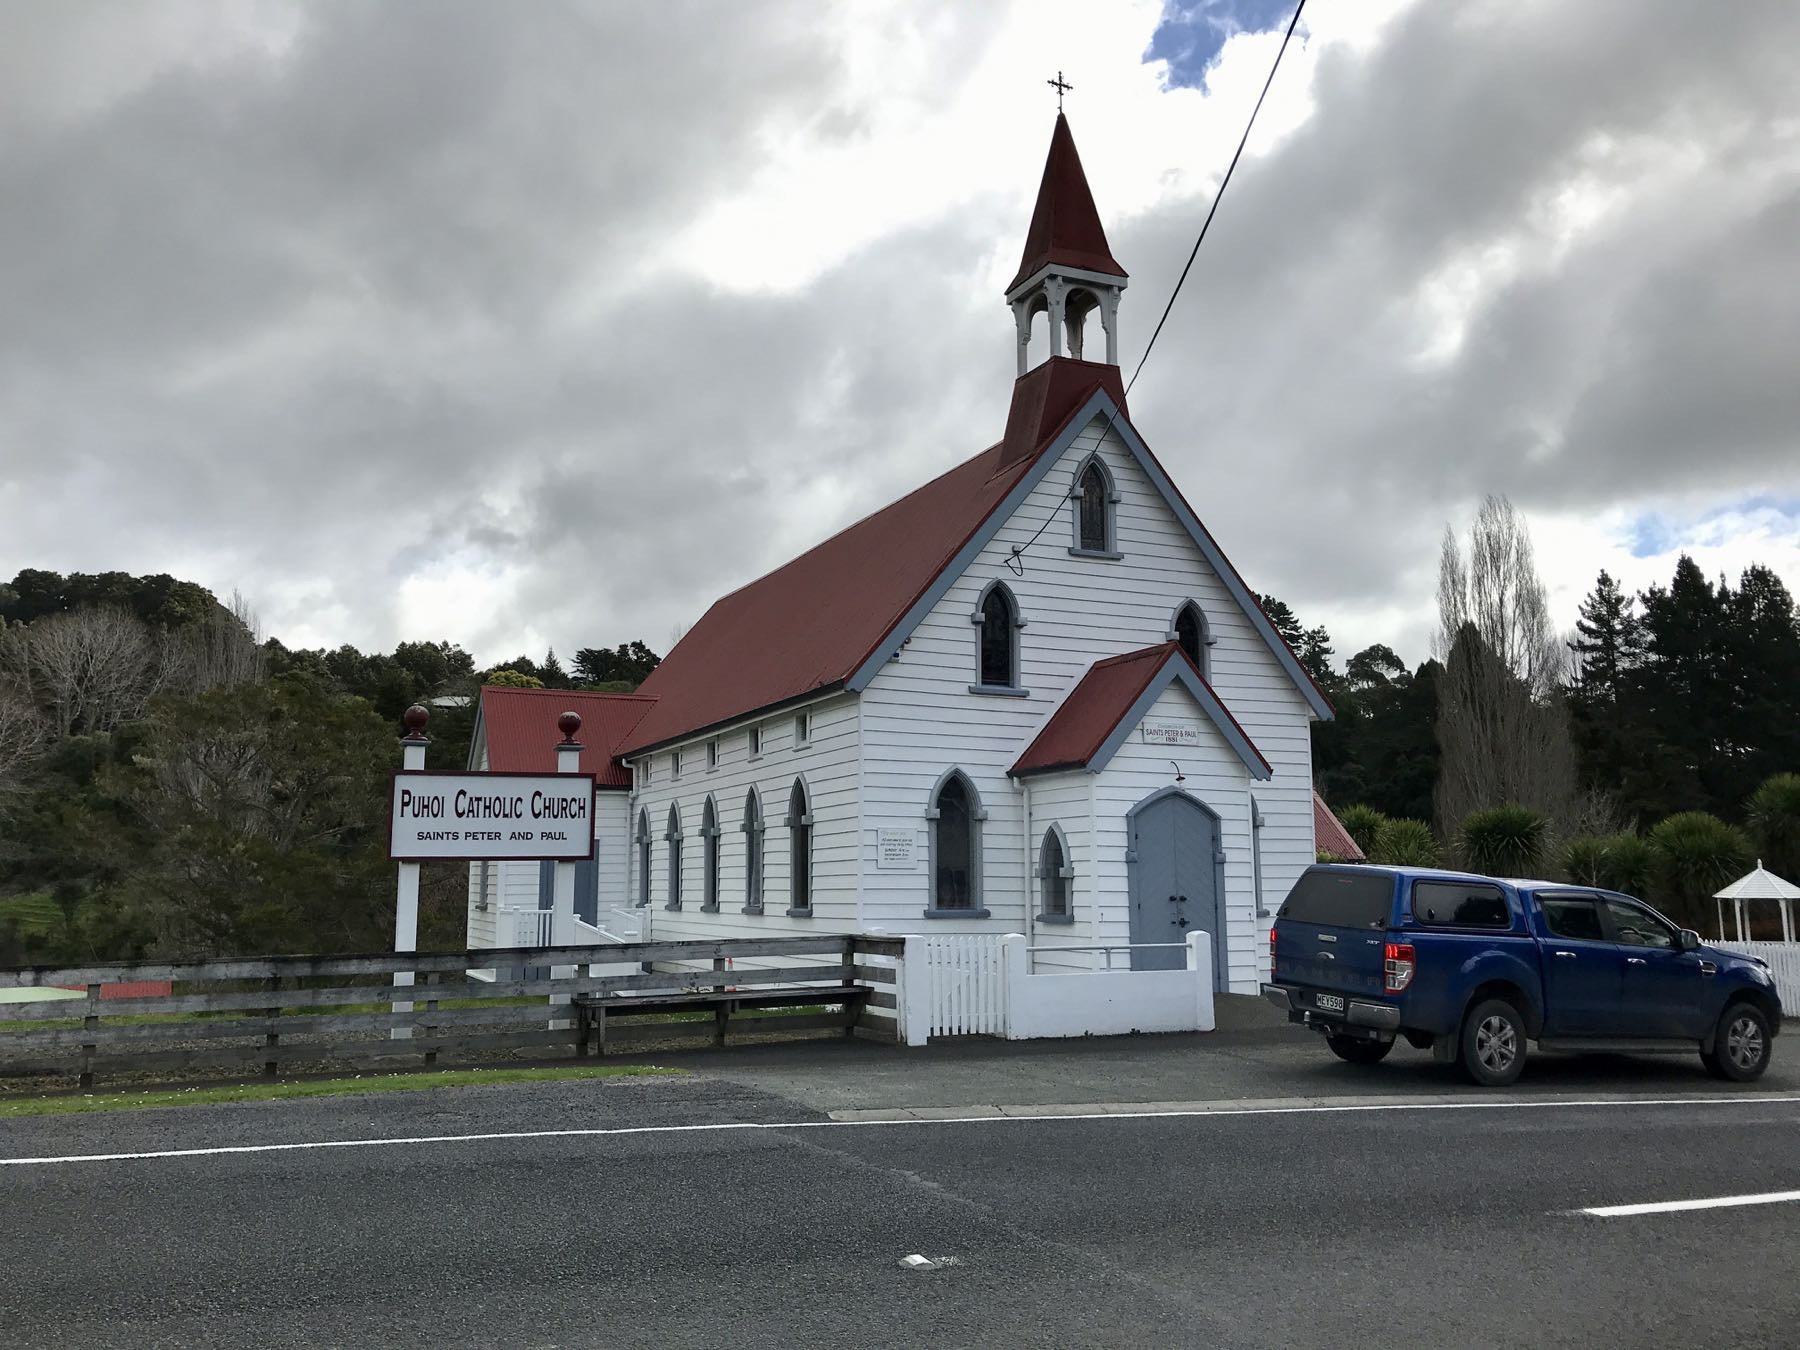 Puhoi church - a small wooden structure painted white, with a red roof.